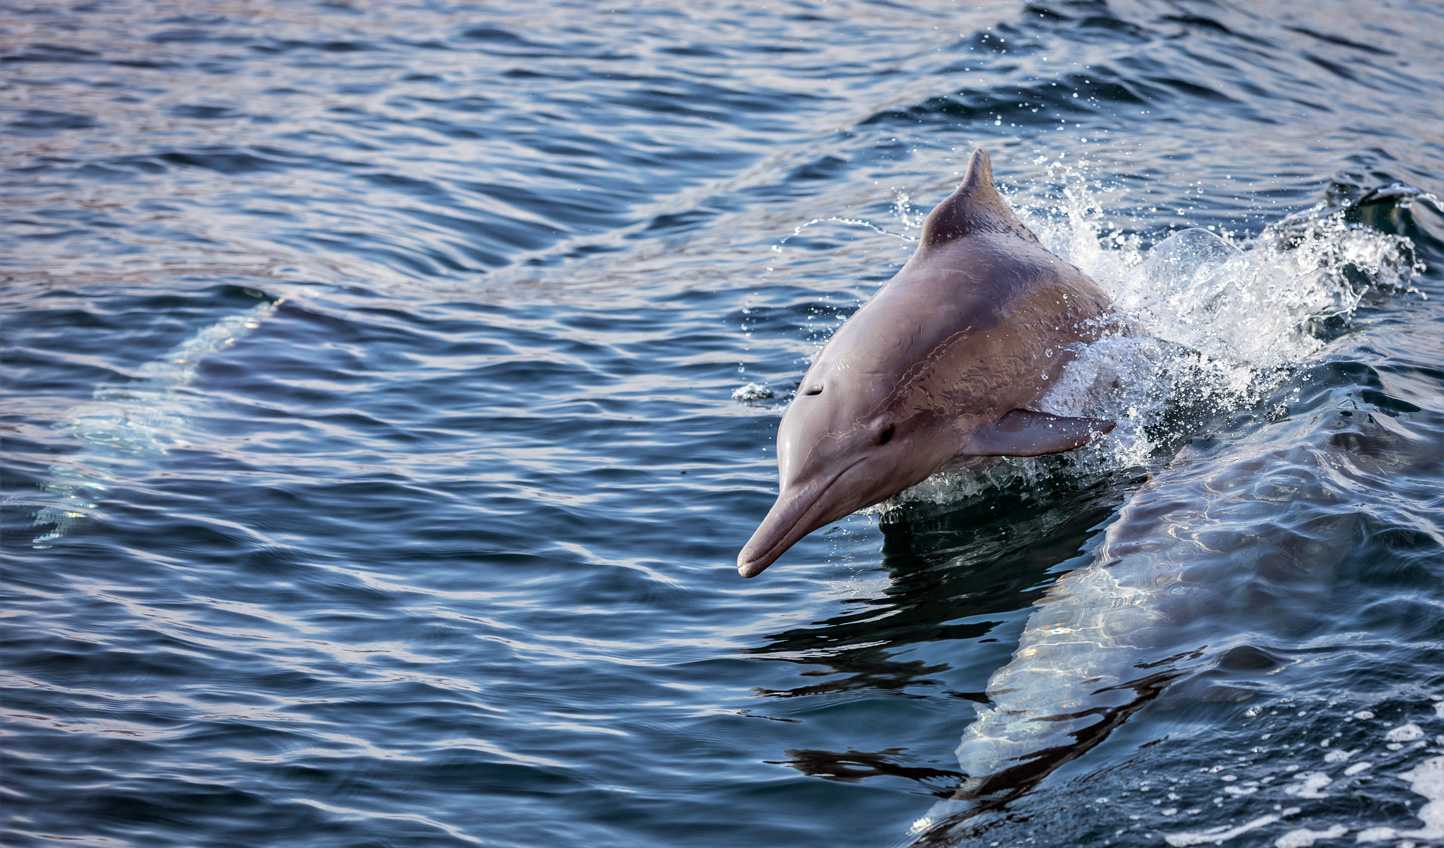 Follow the dolphins out into the Gulf of Oman